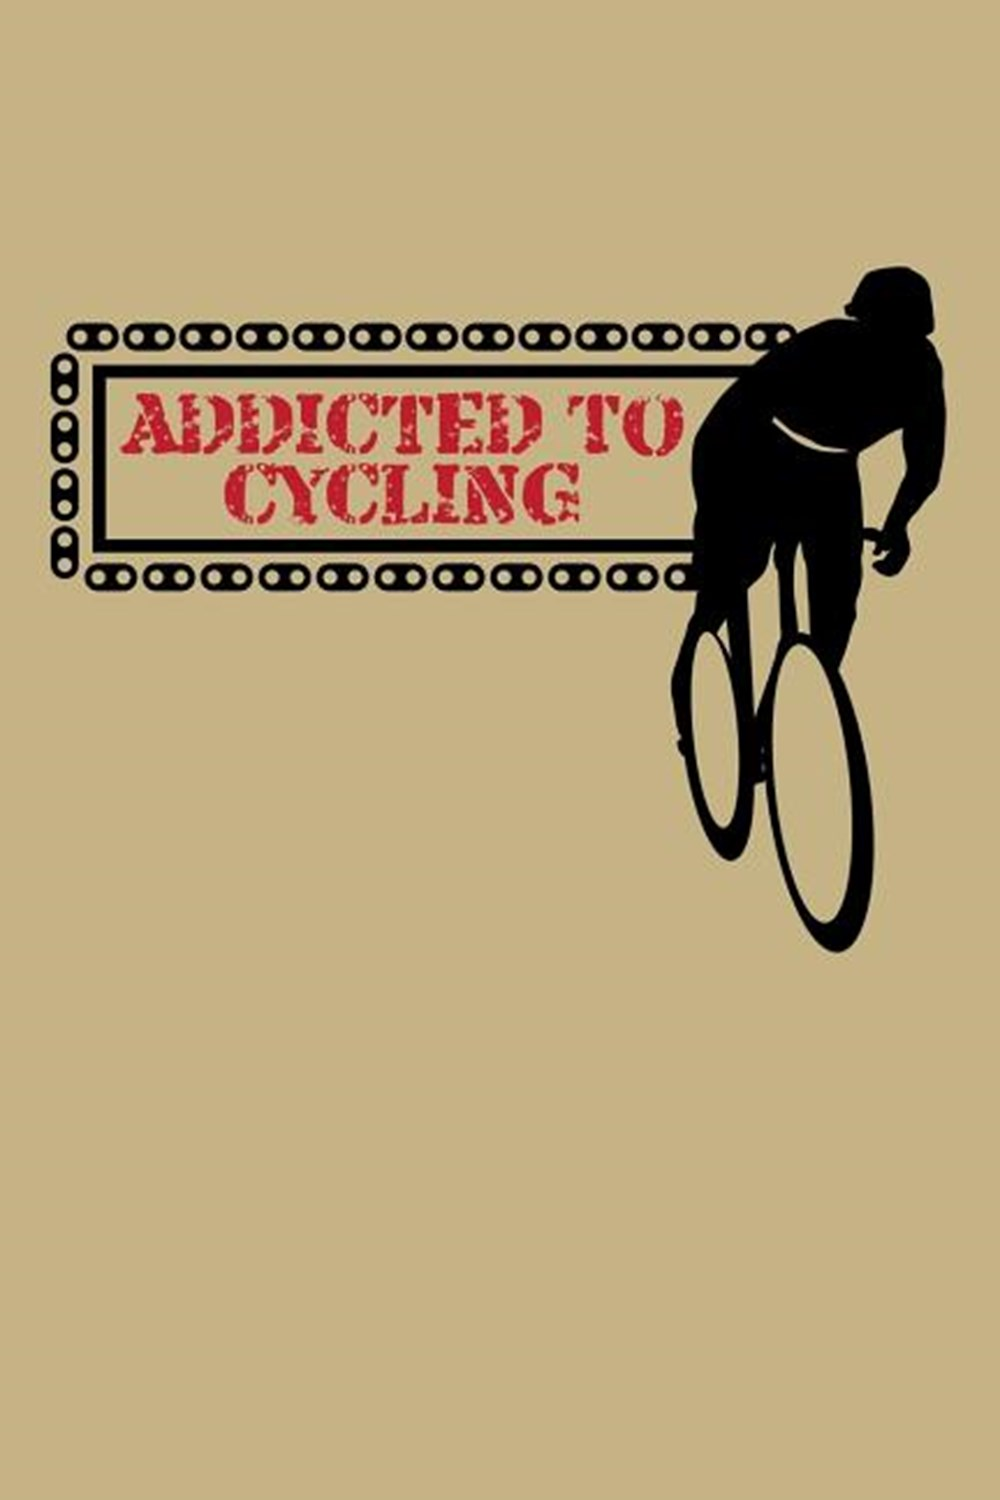 Addicted To Cycling Blank Paper Sketch Book - Artist Sketch Pad Journal for Sketching, Doodling, Dra